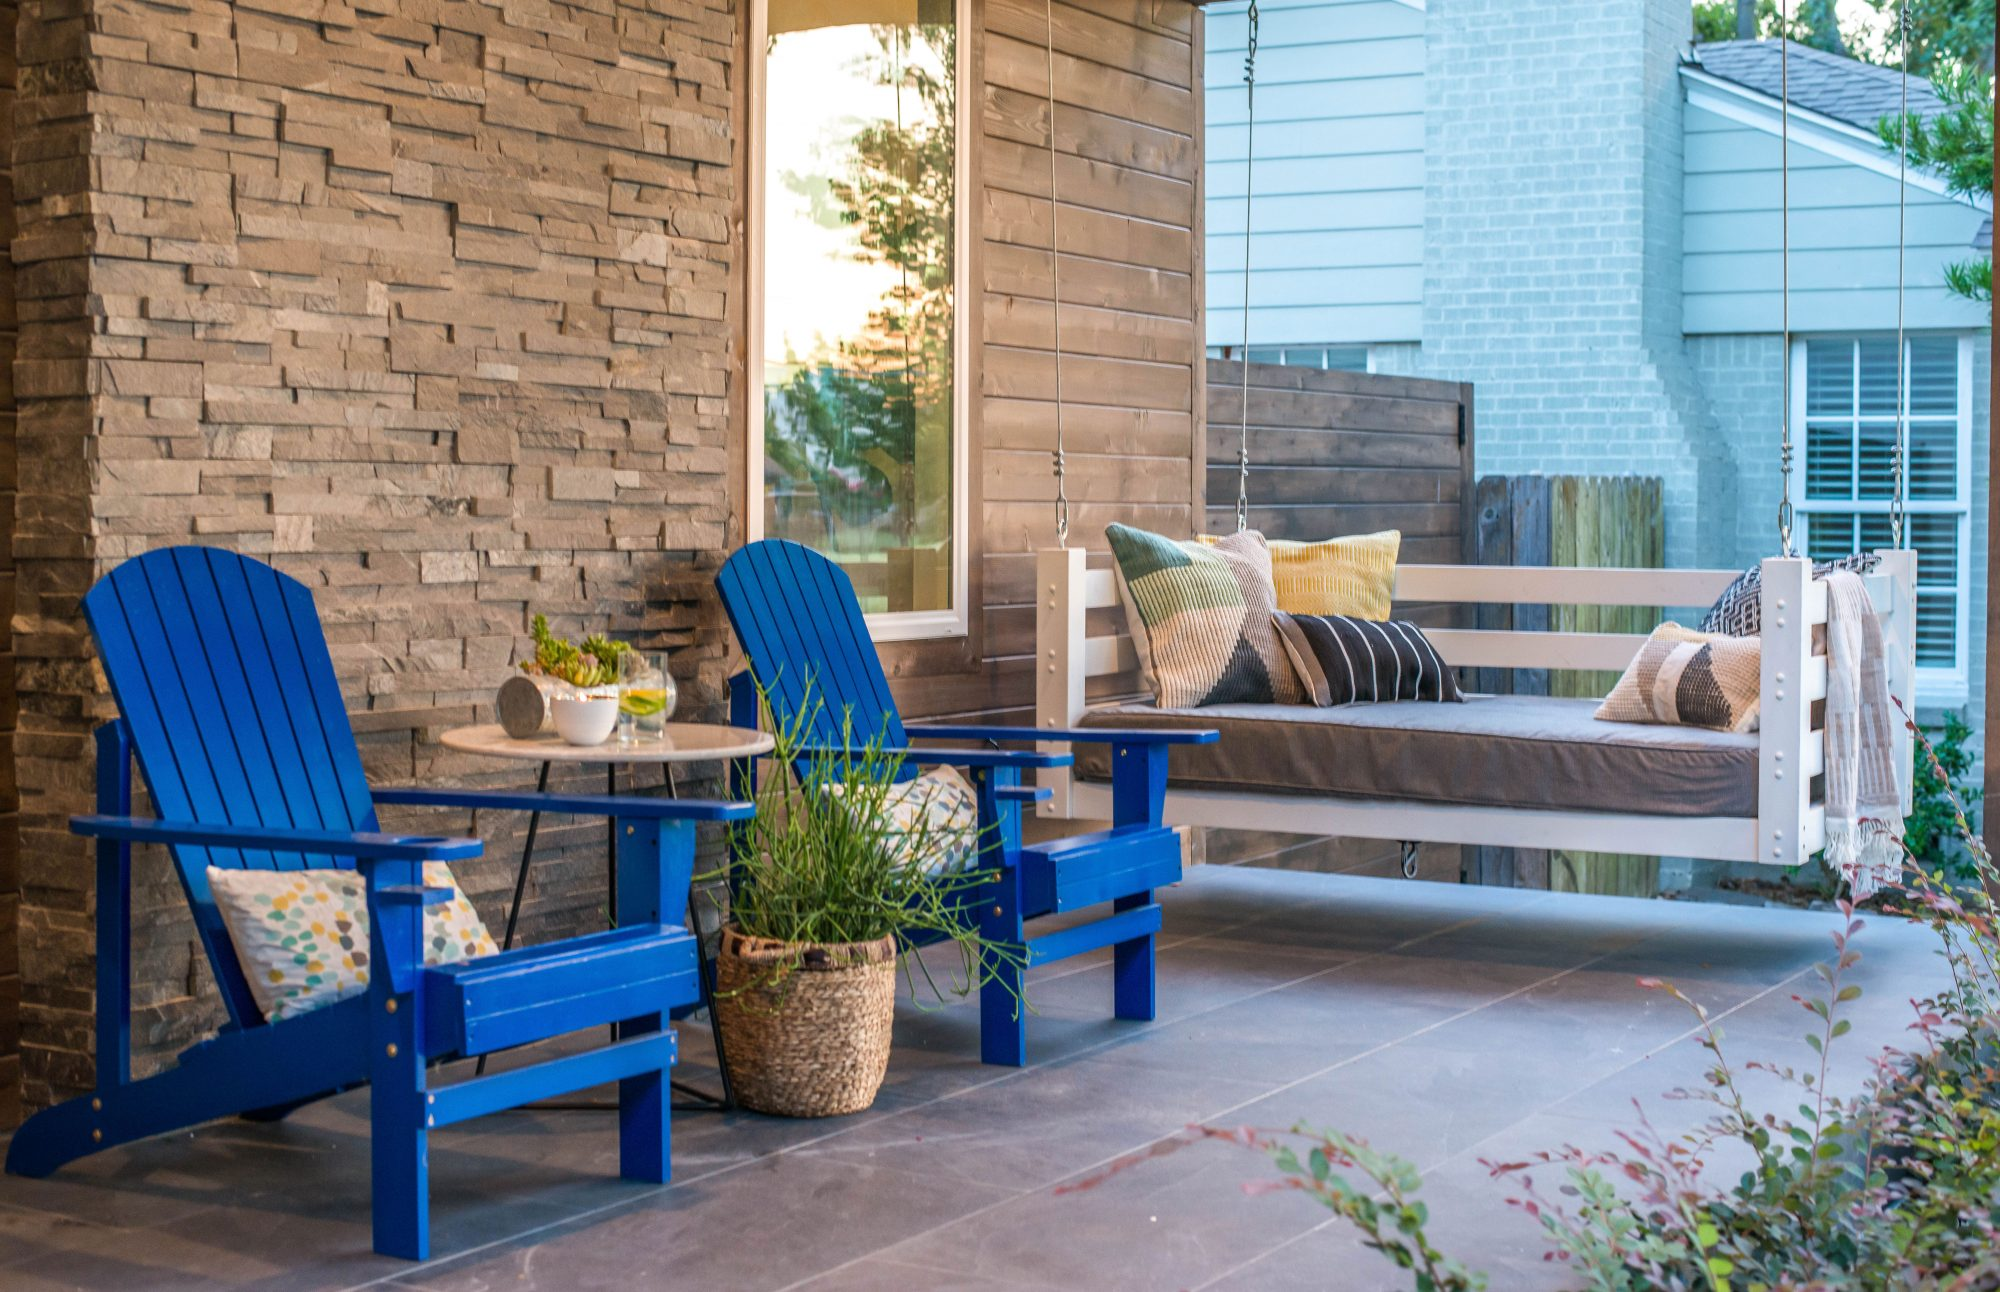 Porch with Blue Adirondack Chairs